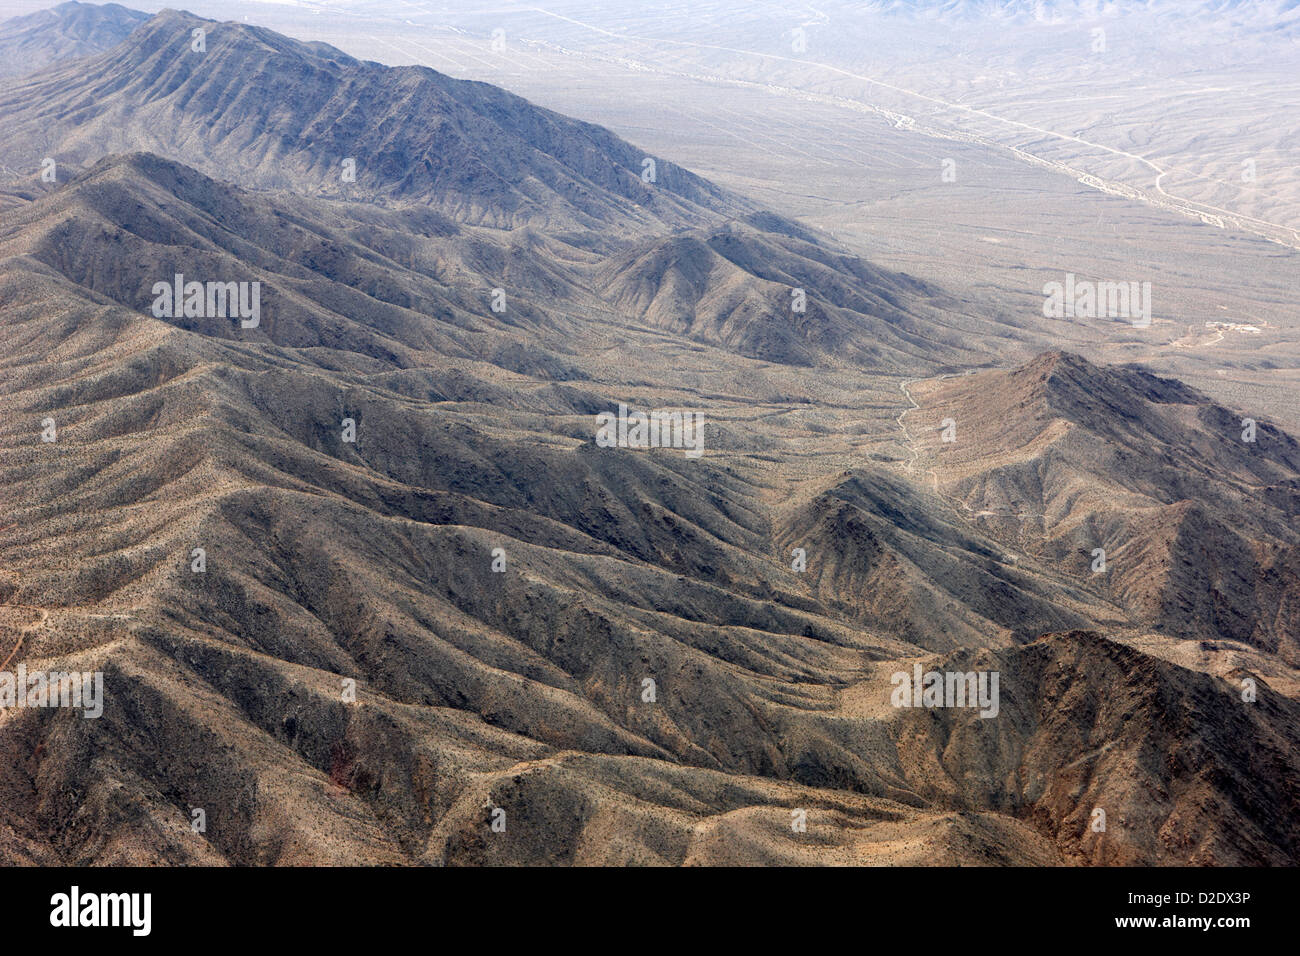 Wheeler ridge mountain ridge fault line désert de Mojave, près de meadview arizona usa Photo Stock